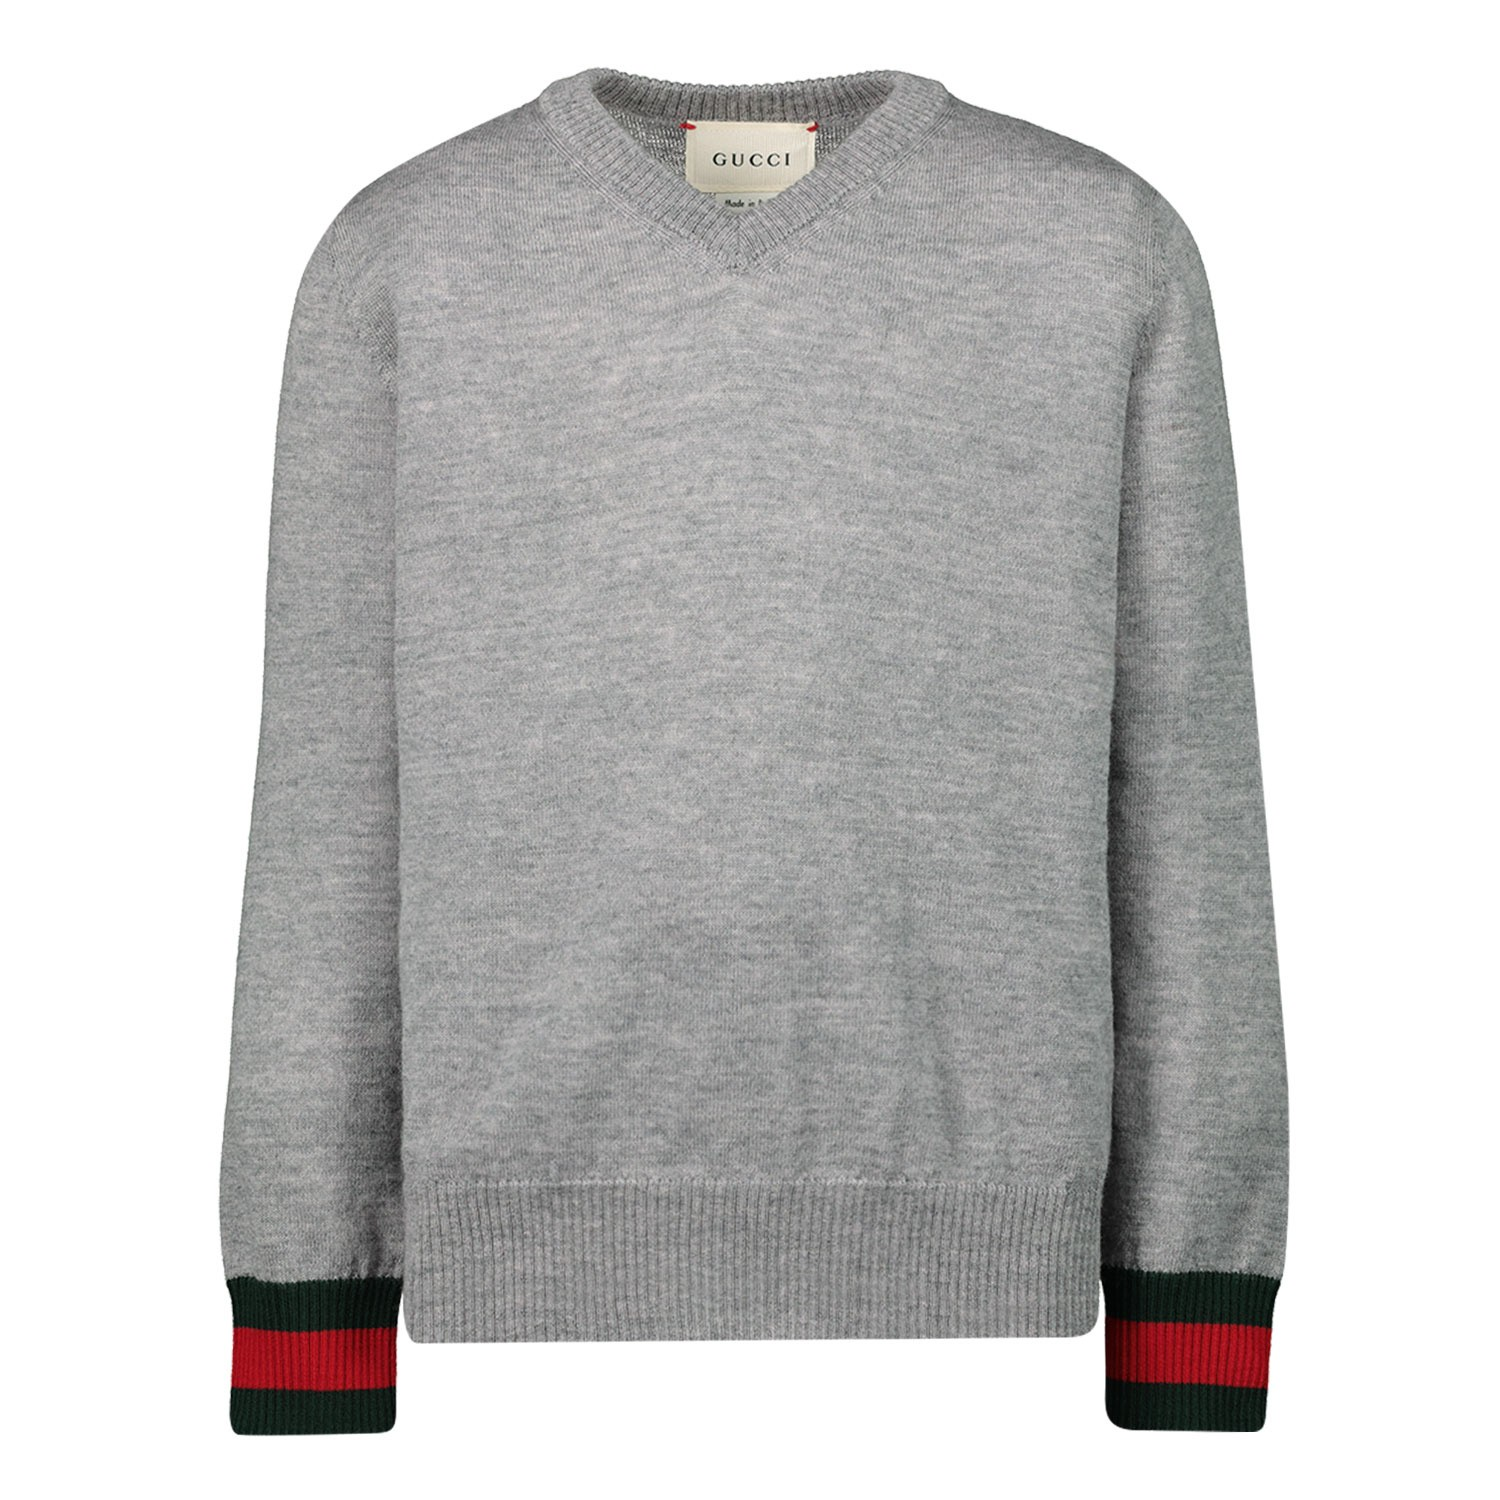 Picture of Gucci 418774 kids sweater light gray